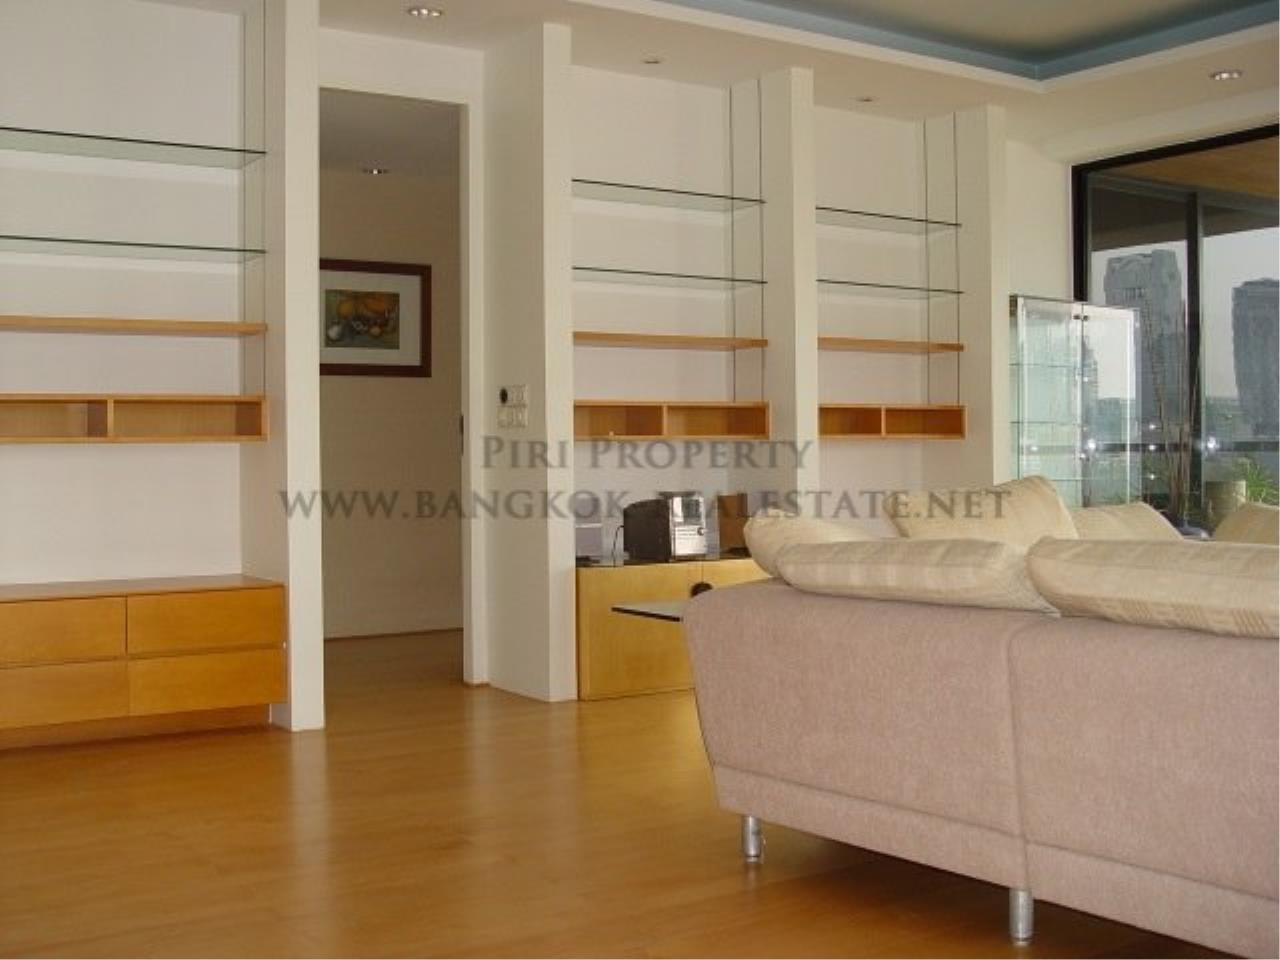 Piri Property Agency's Polo Park Condominium - Huge 2 Bedroom with 220 SQM 2